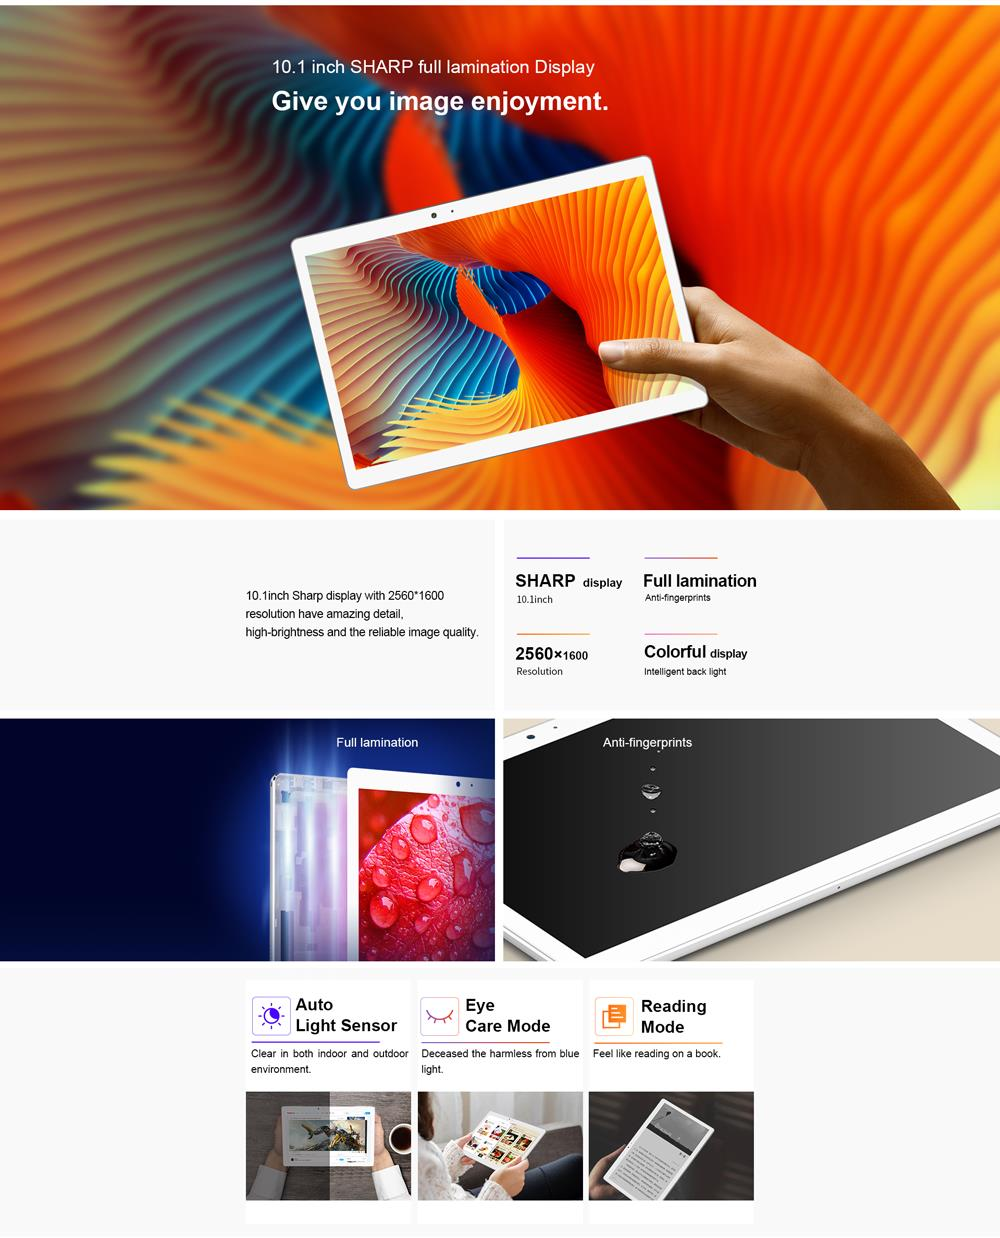 Teclast T20 Helio X27 Deca Core 4GB RAM 64G Dual 4G SIM 13MP Camera Android 7.0 OS 2.5K Screen 10.1 Inch Tablet